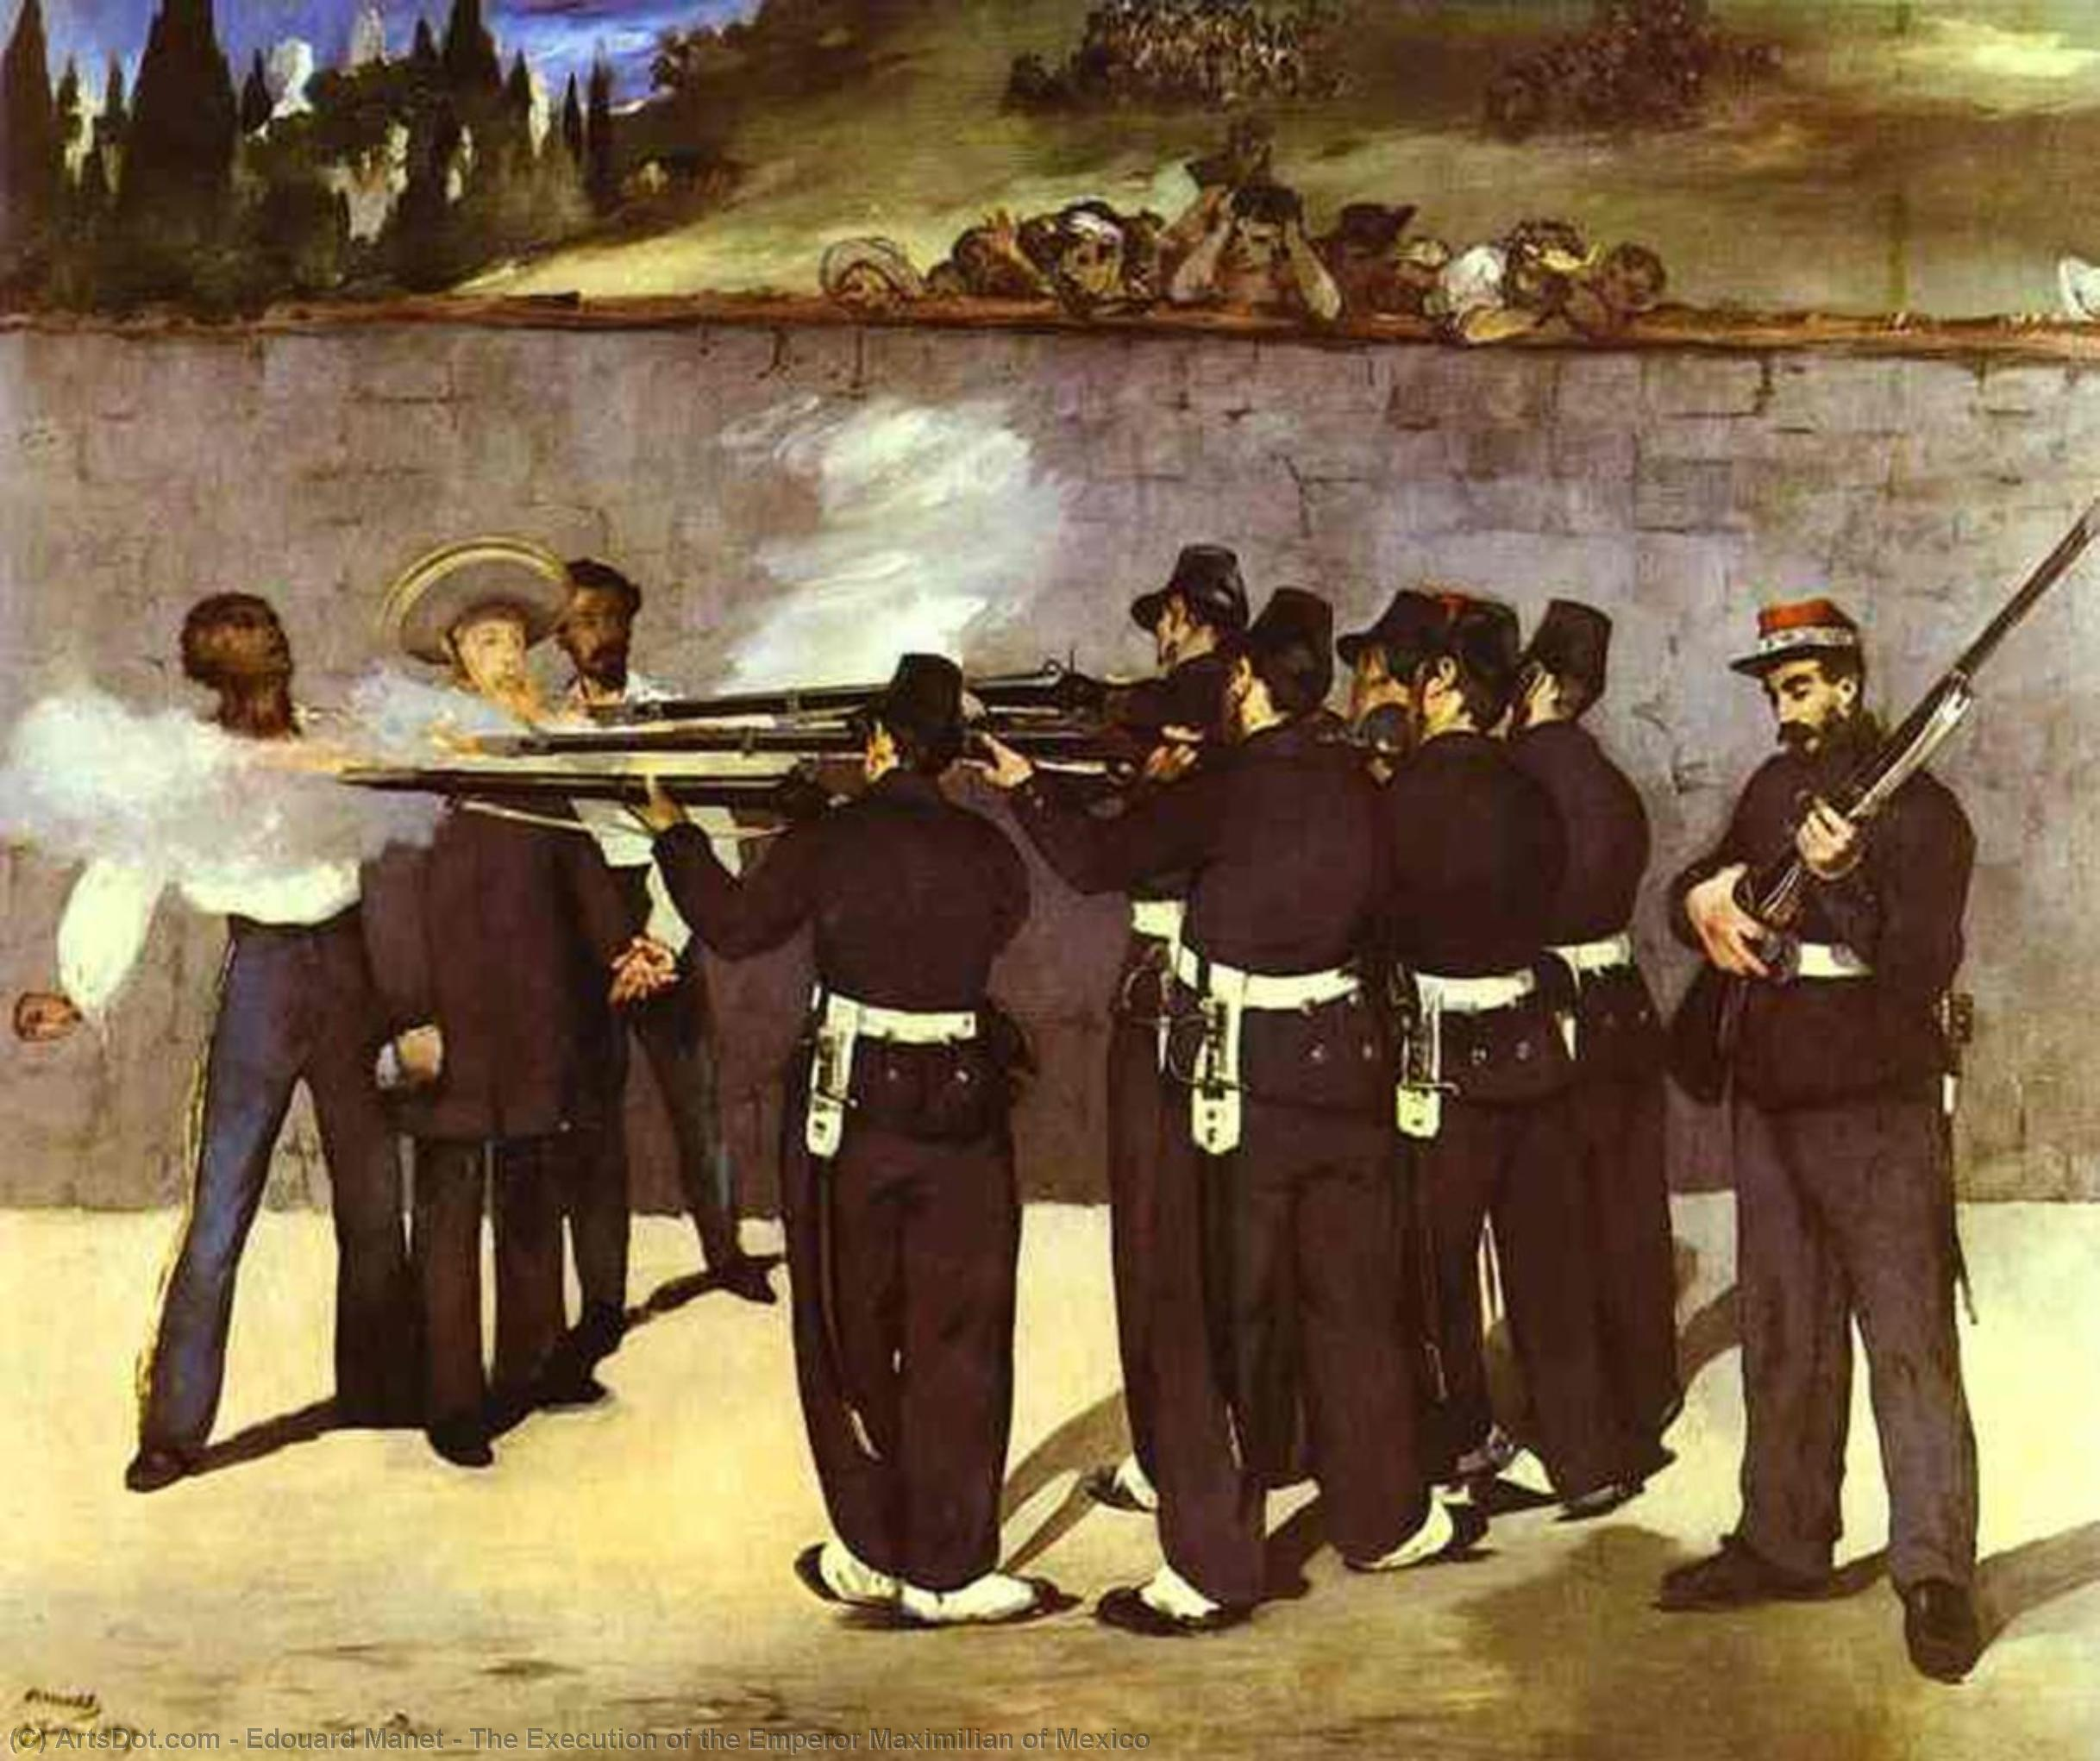 Wikioo.org - The Encyclopedia of Fine Arts - Painting, Artwork by Edouard Manet - The Execution of the Emperor Maximilian of Mexico